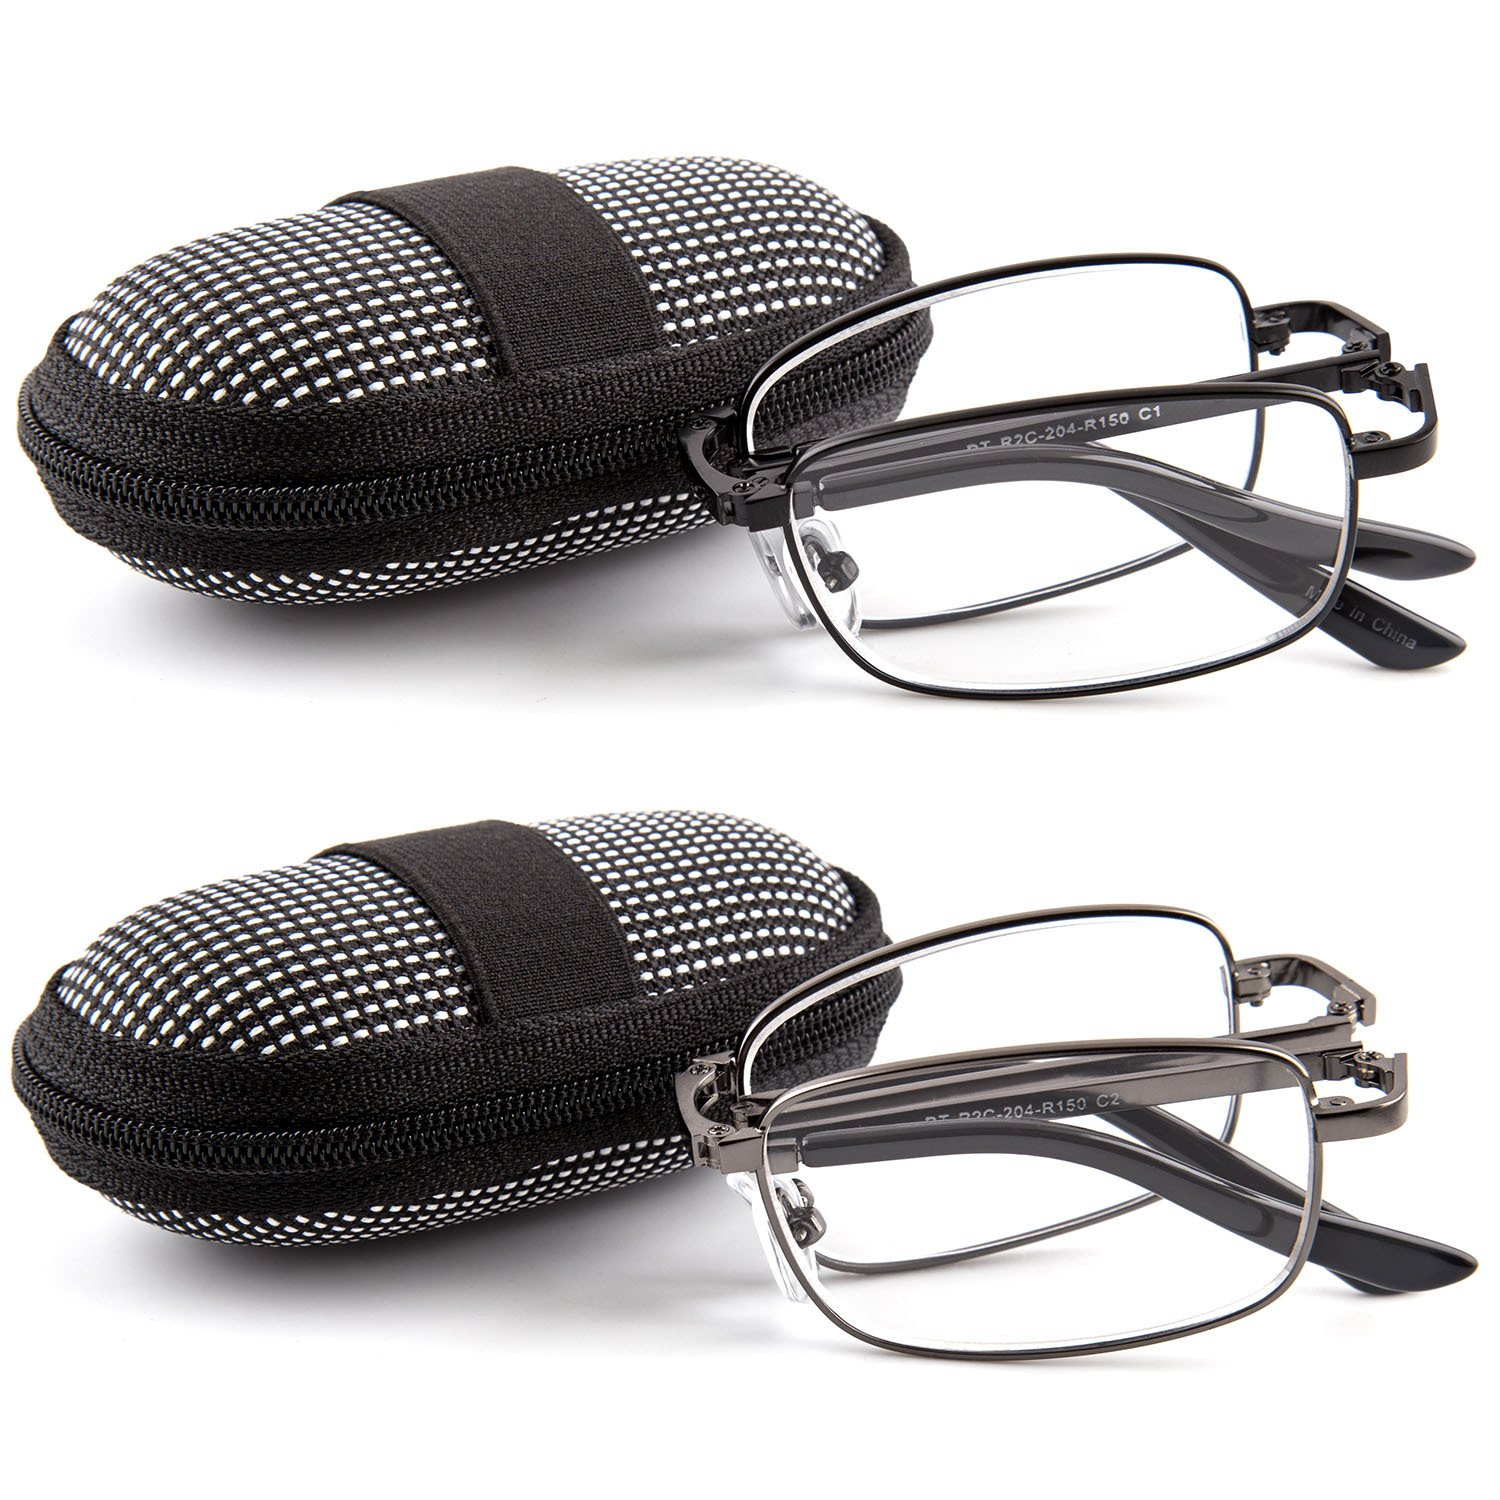 DOUBLETAKE 2 Pack Foldable Readers w Zip Case Reading Glasses - 1.75x by DOUBLETAKE